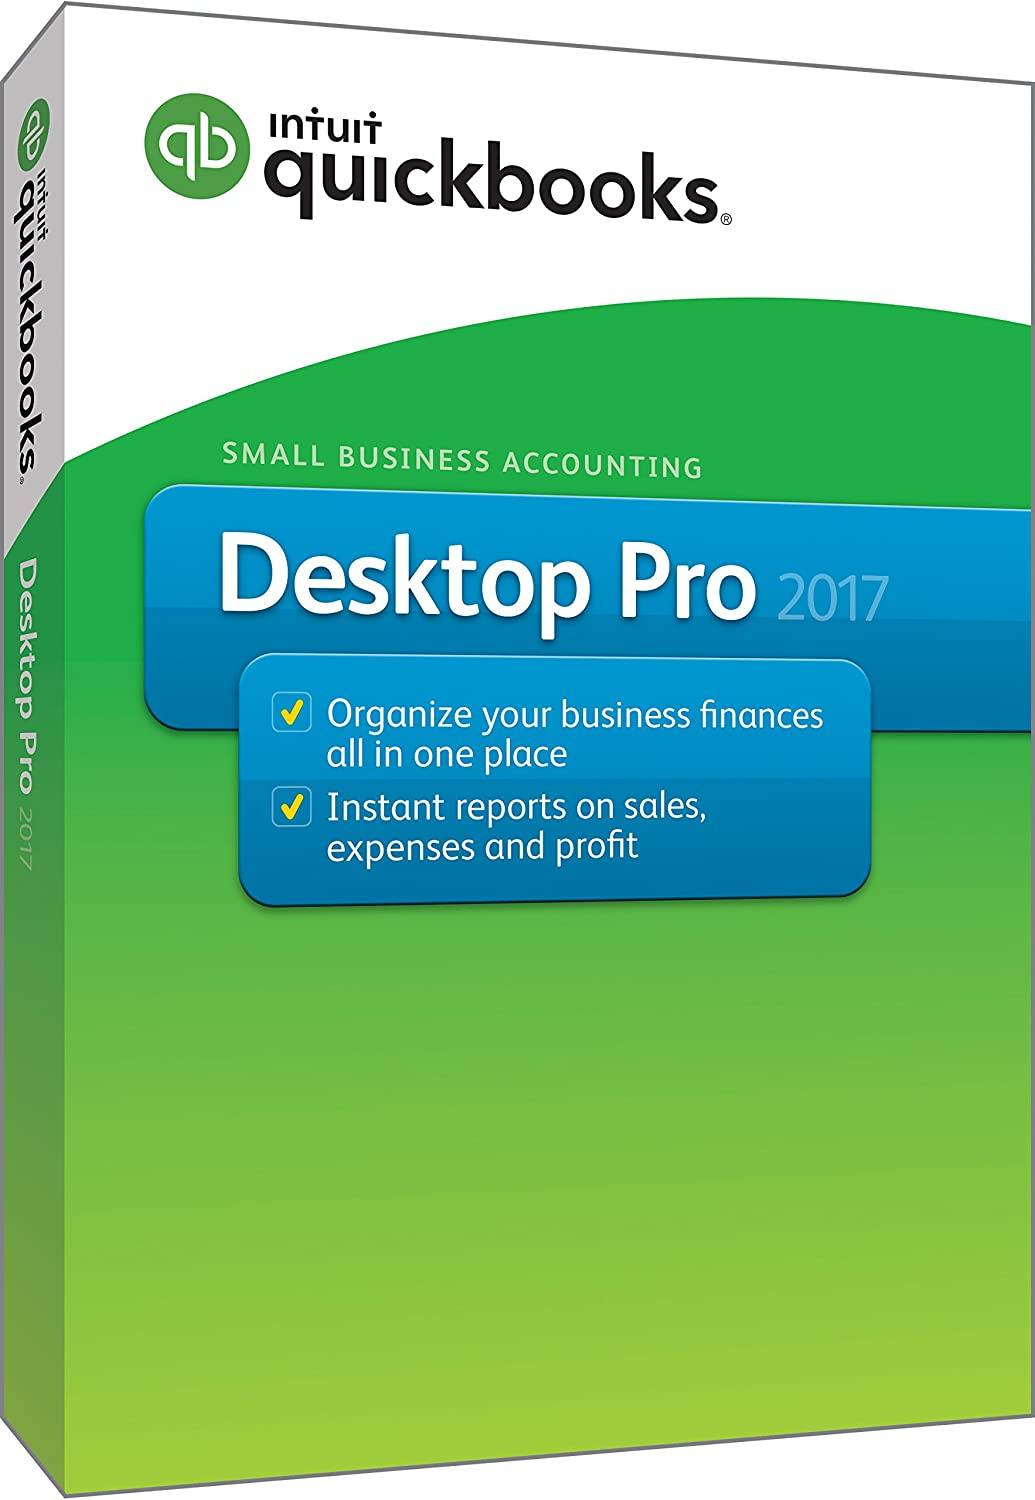 Intuit QuickBooks Desktop Pro 2017 Small Business Accounting Software[Old Version]